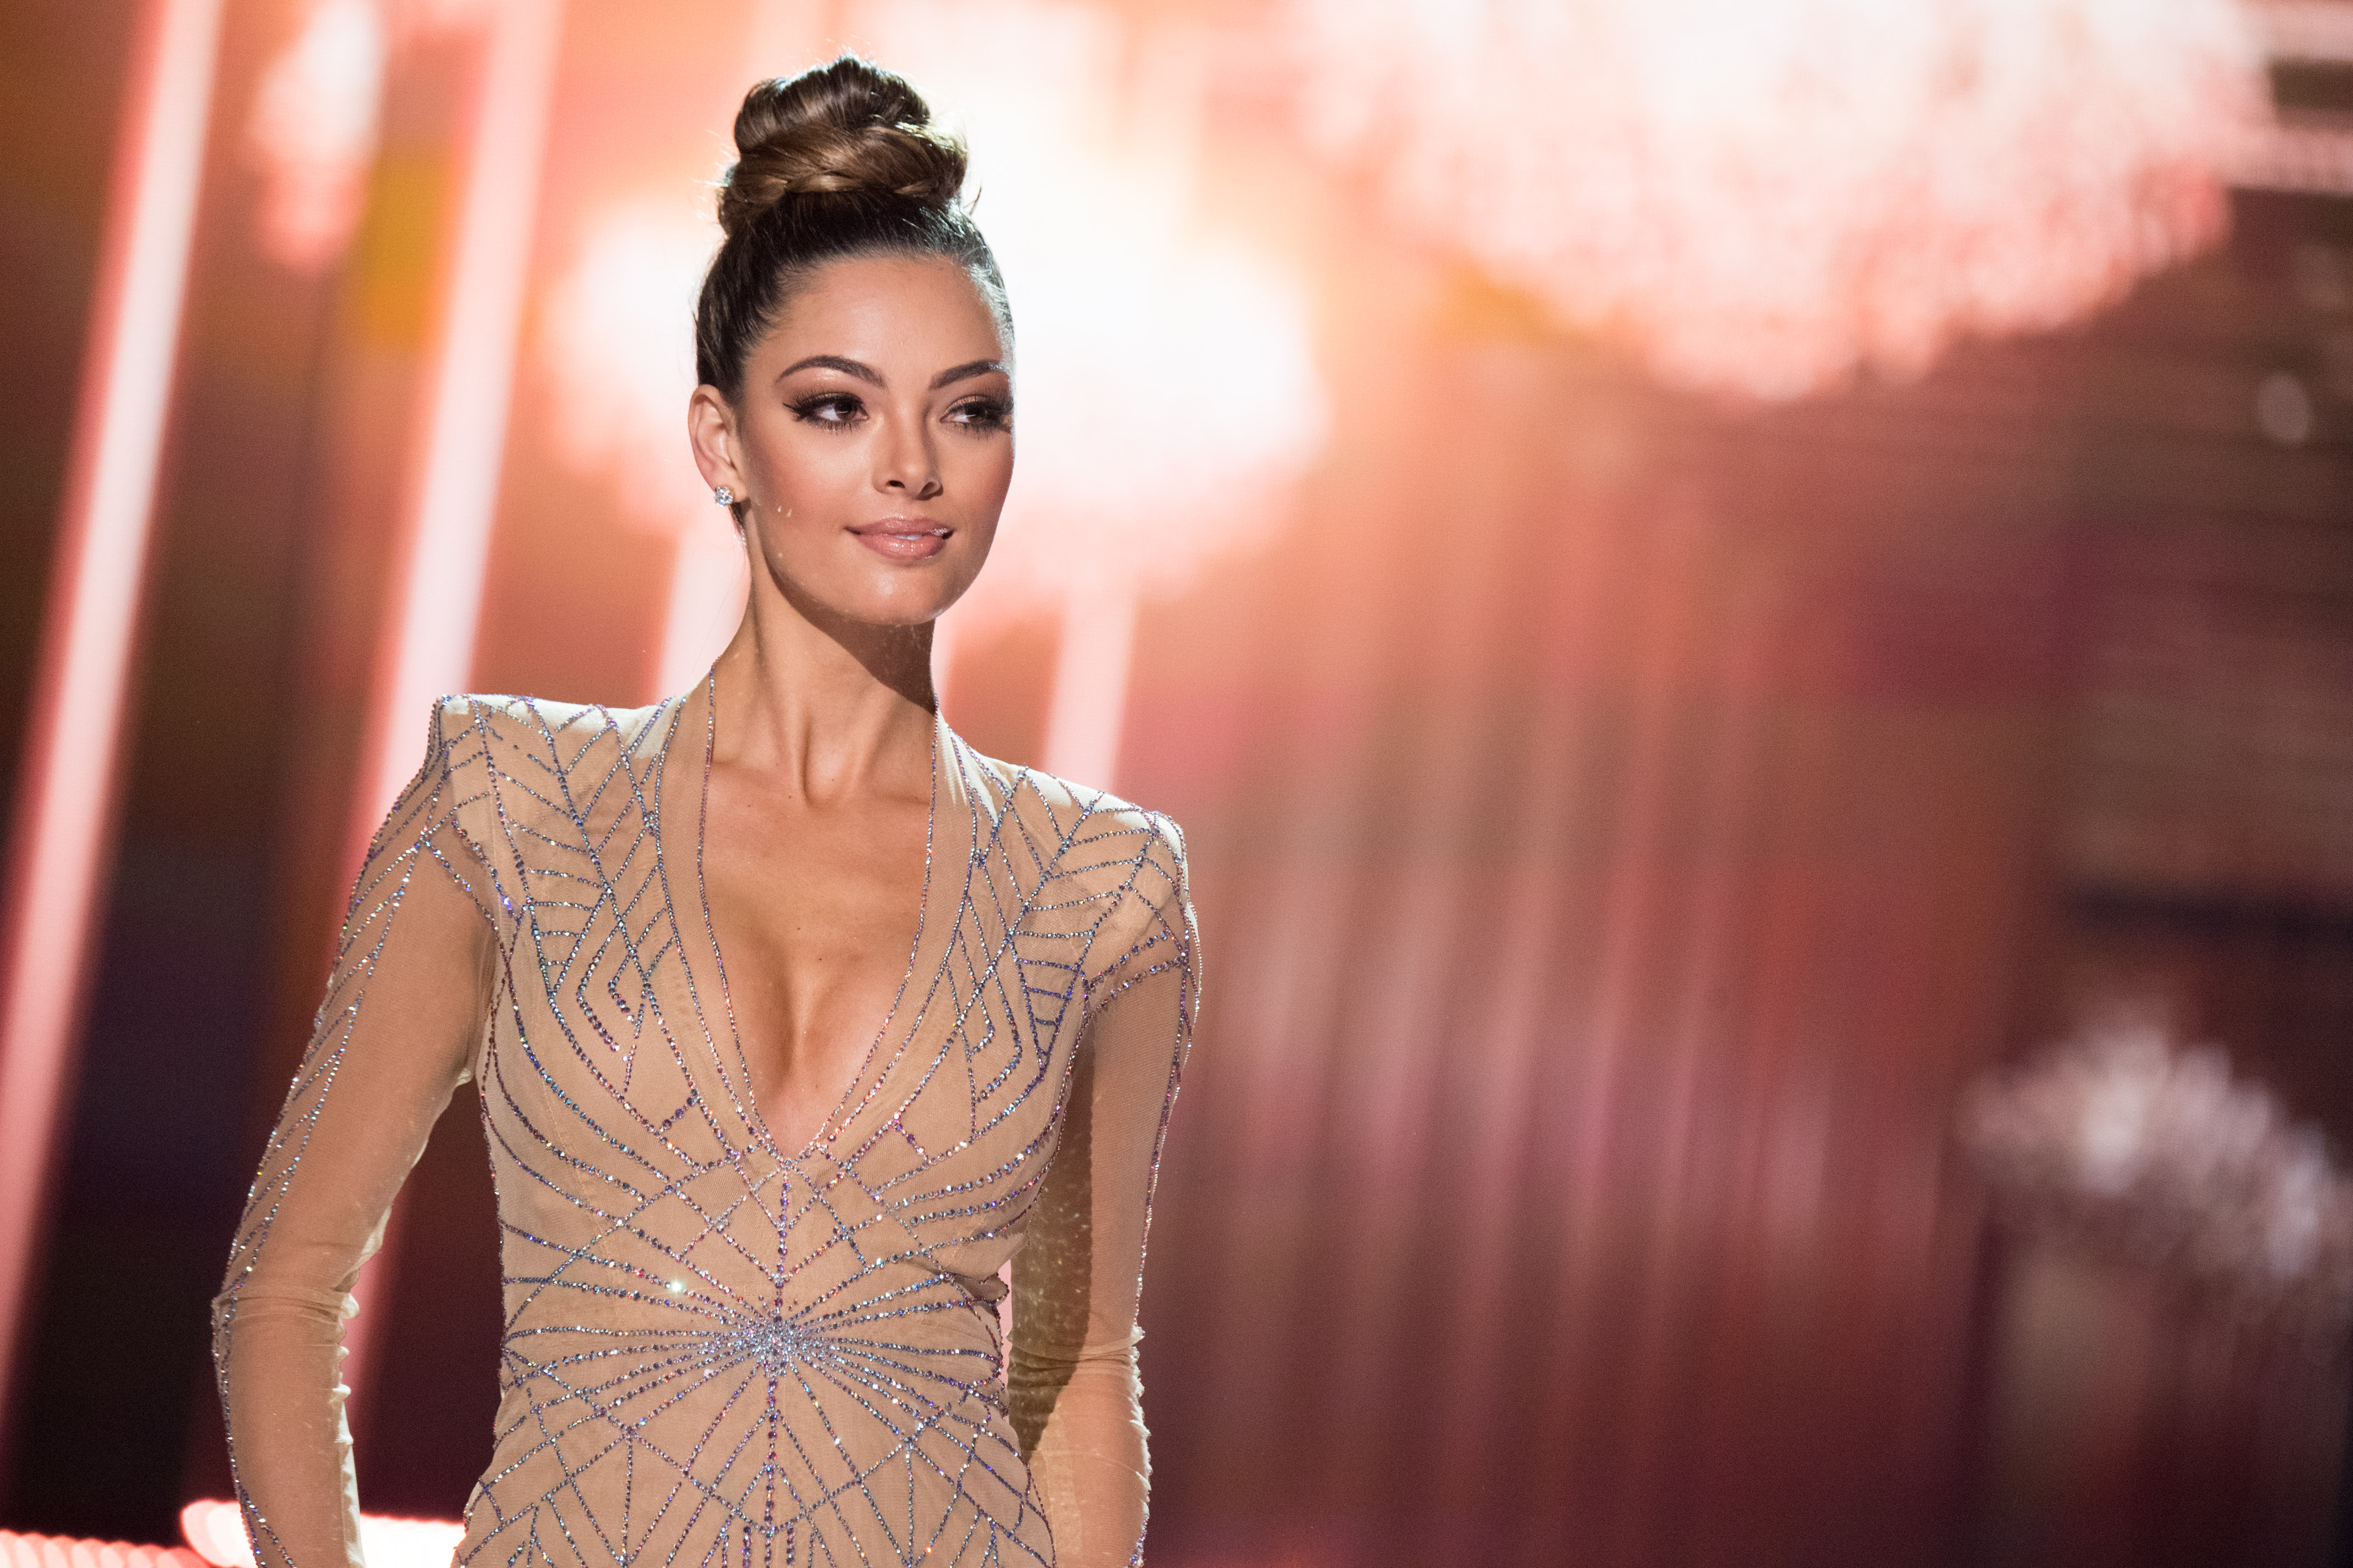 Demi-Leigh Nel-Peters in her evening gown at the Miss Universe pageant. Photo from the Miss Universe Organization